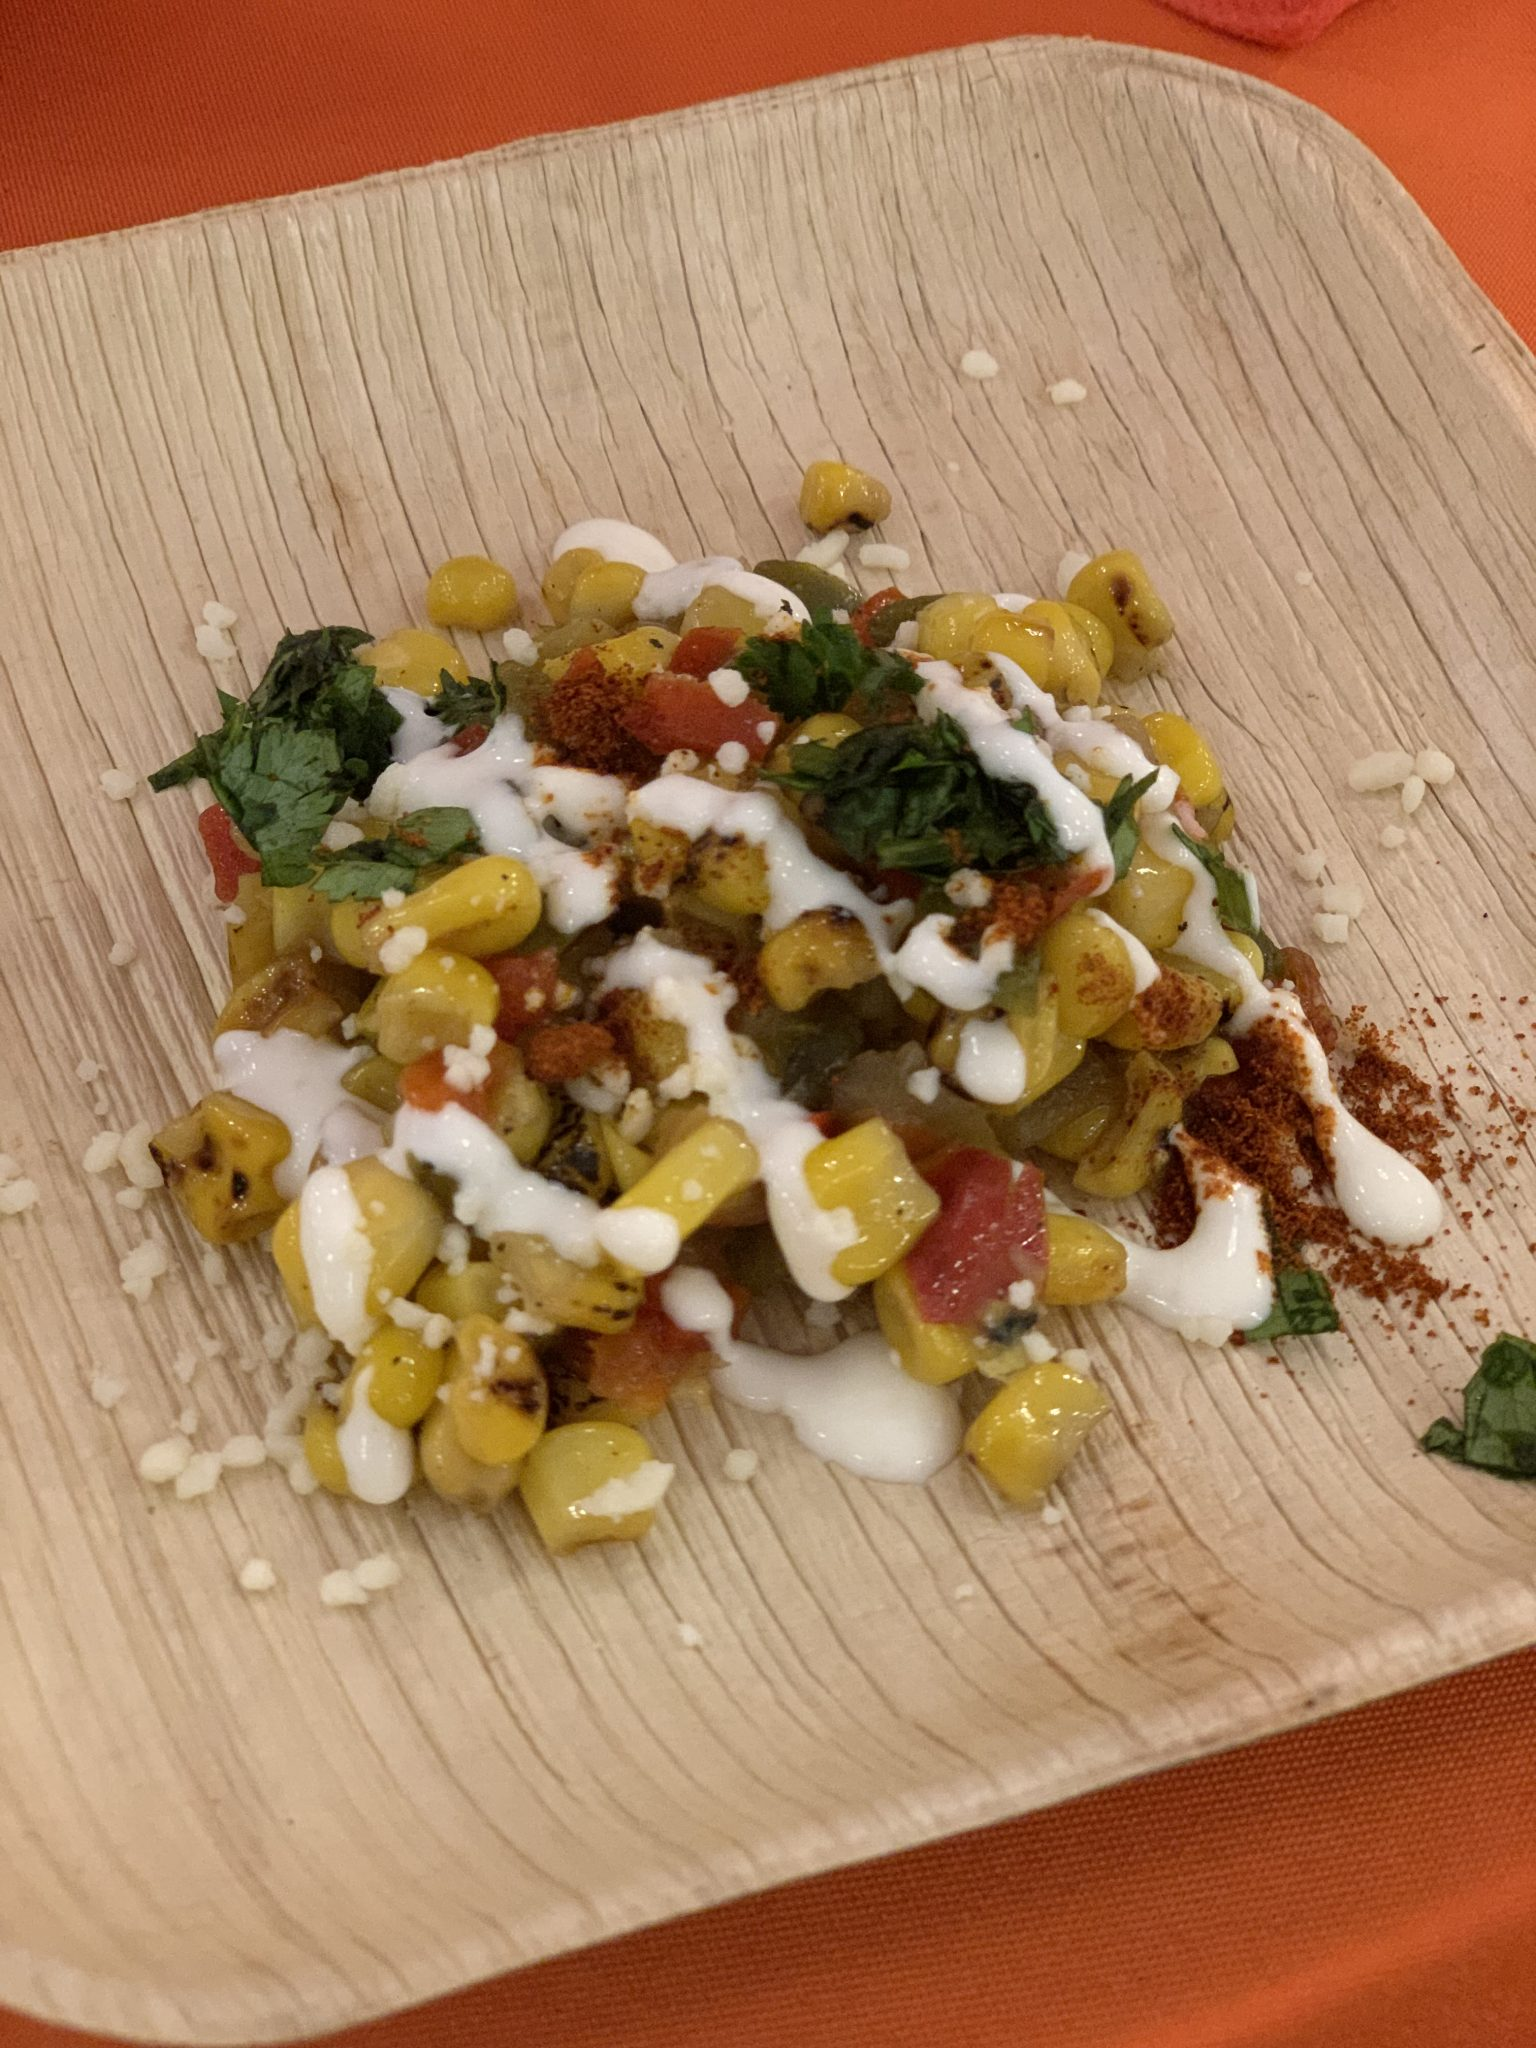 Grilled Street Corn at Busch Gardens Tampa Bay Food and Wine Festival